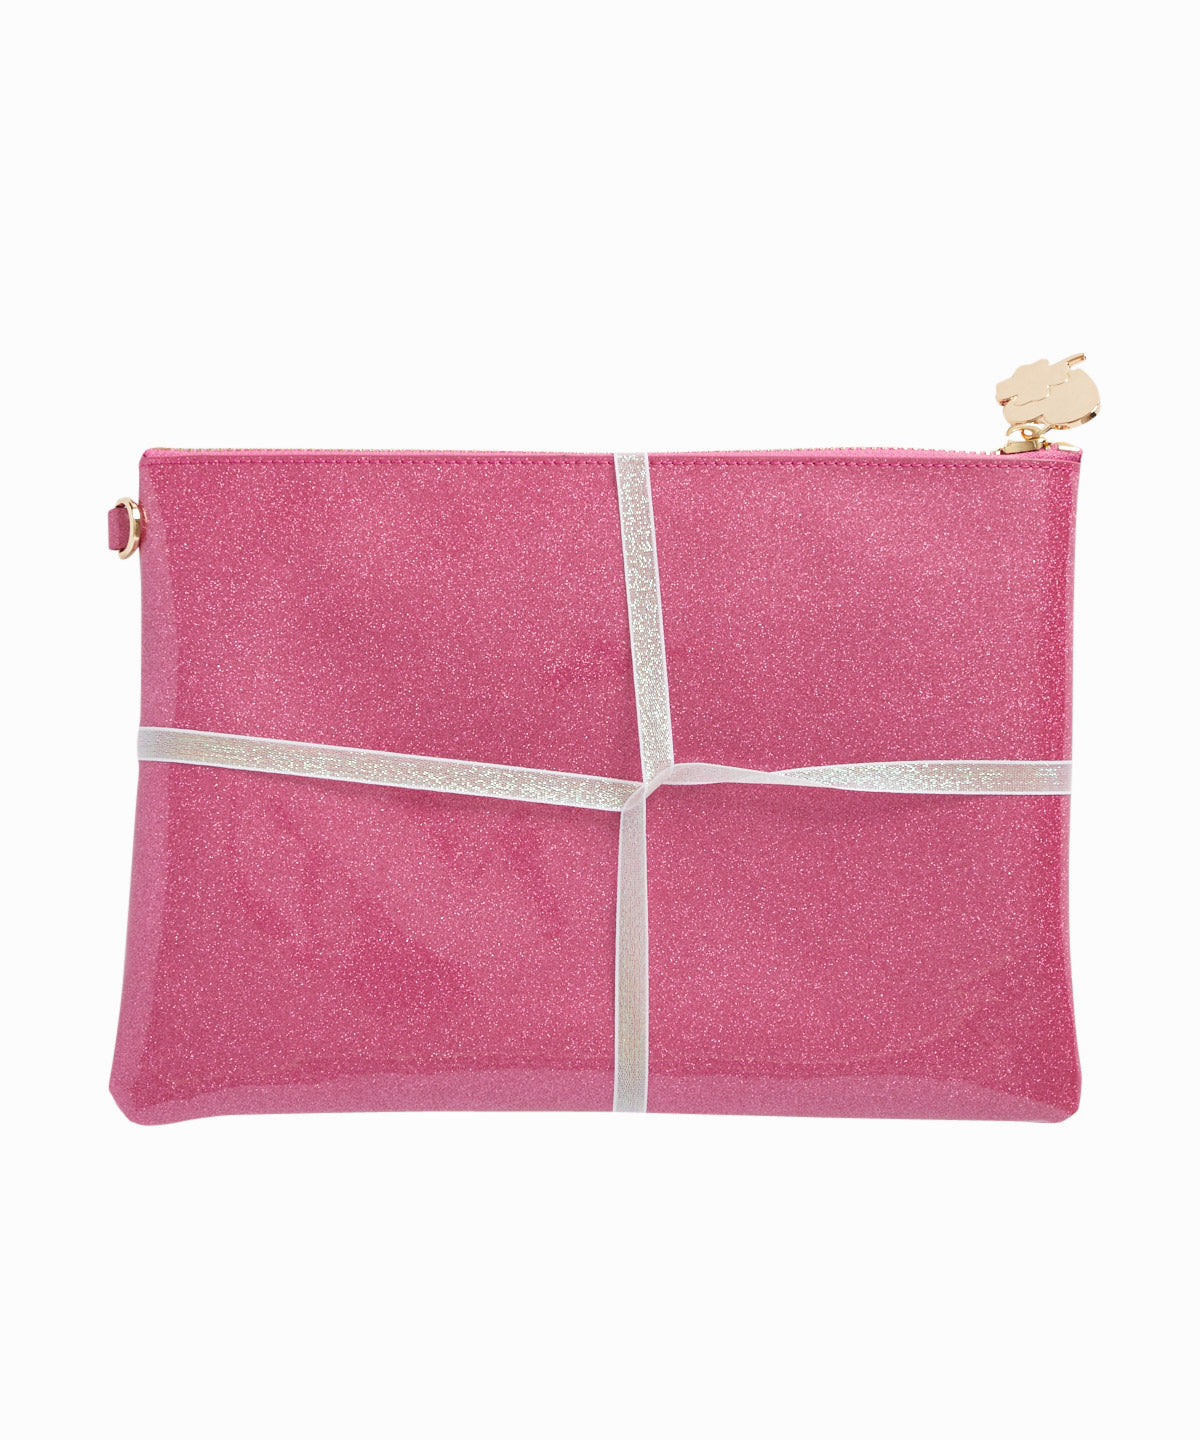 Exclusive Set of 3 Fuchsia Patent Flat Pouches